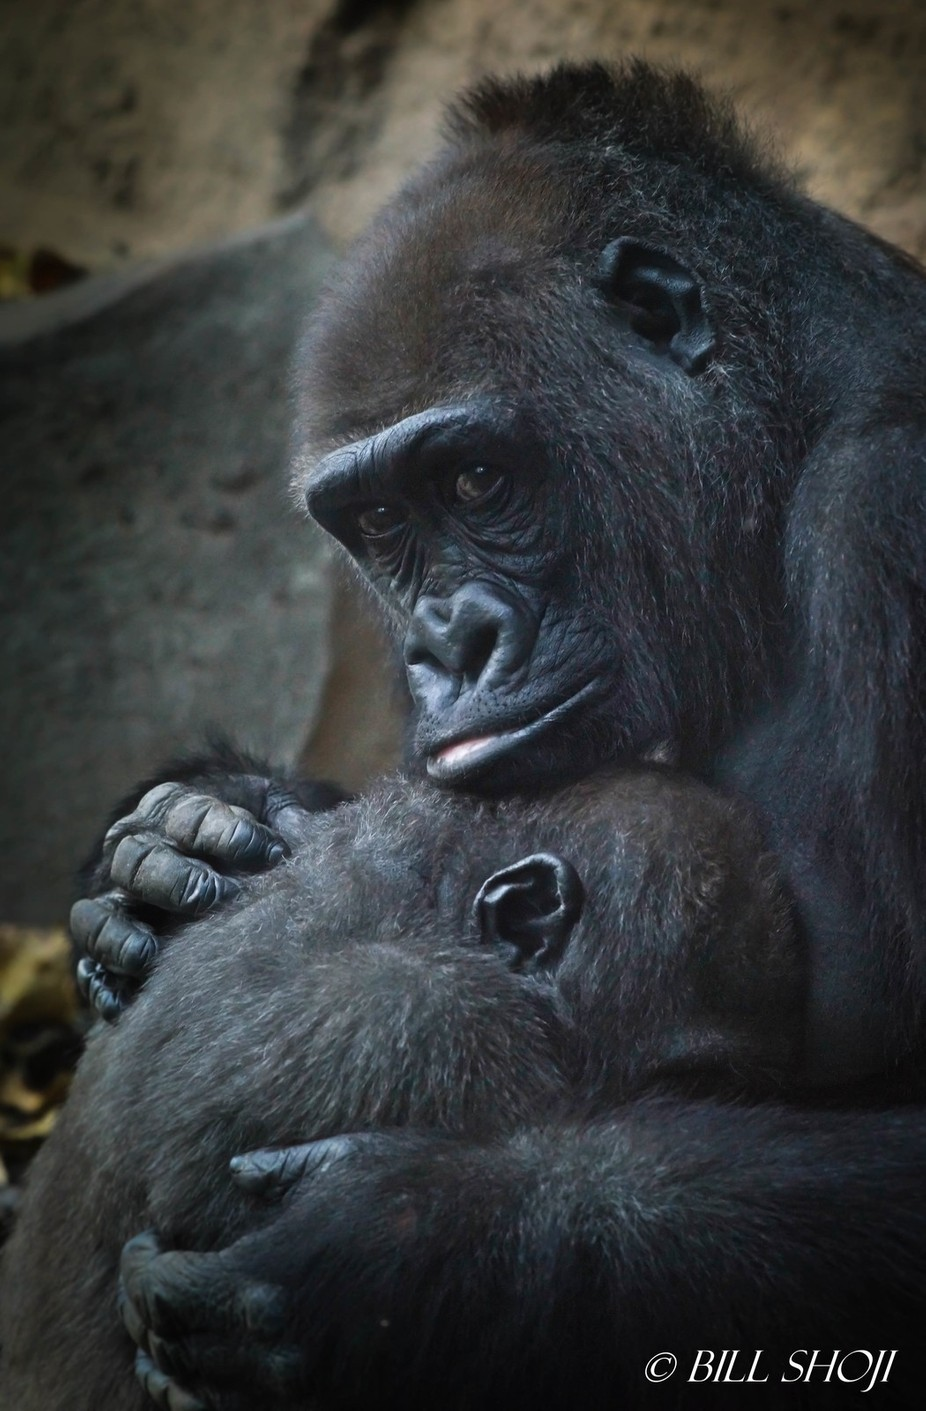 Mother and baby gorilla at Bronx Zoo, New York, December 2017.